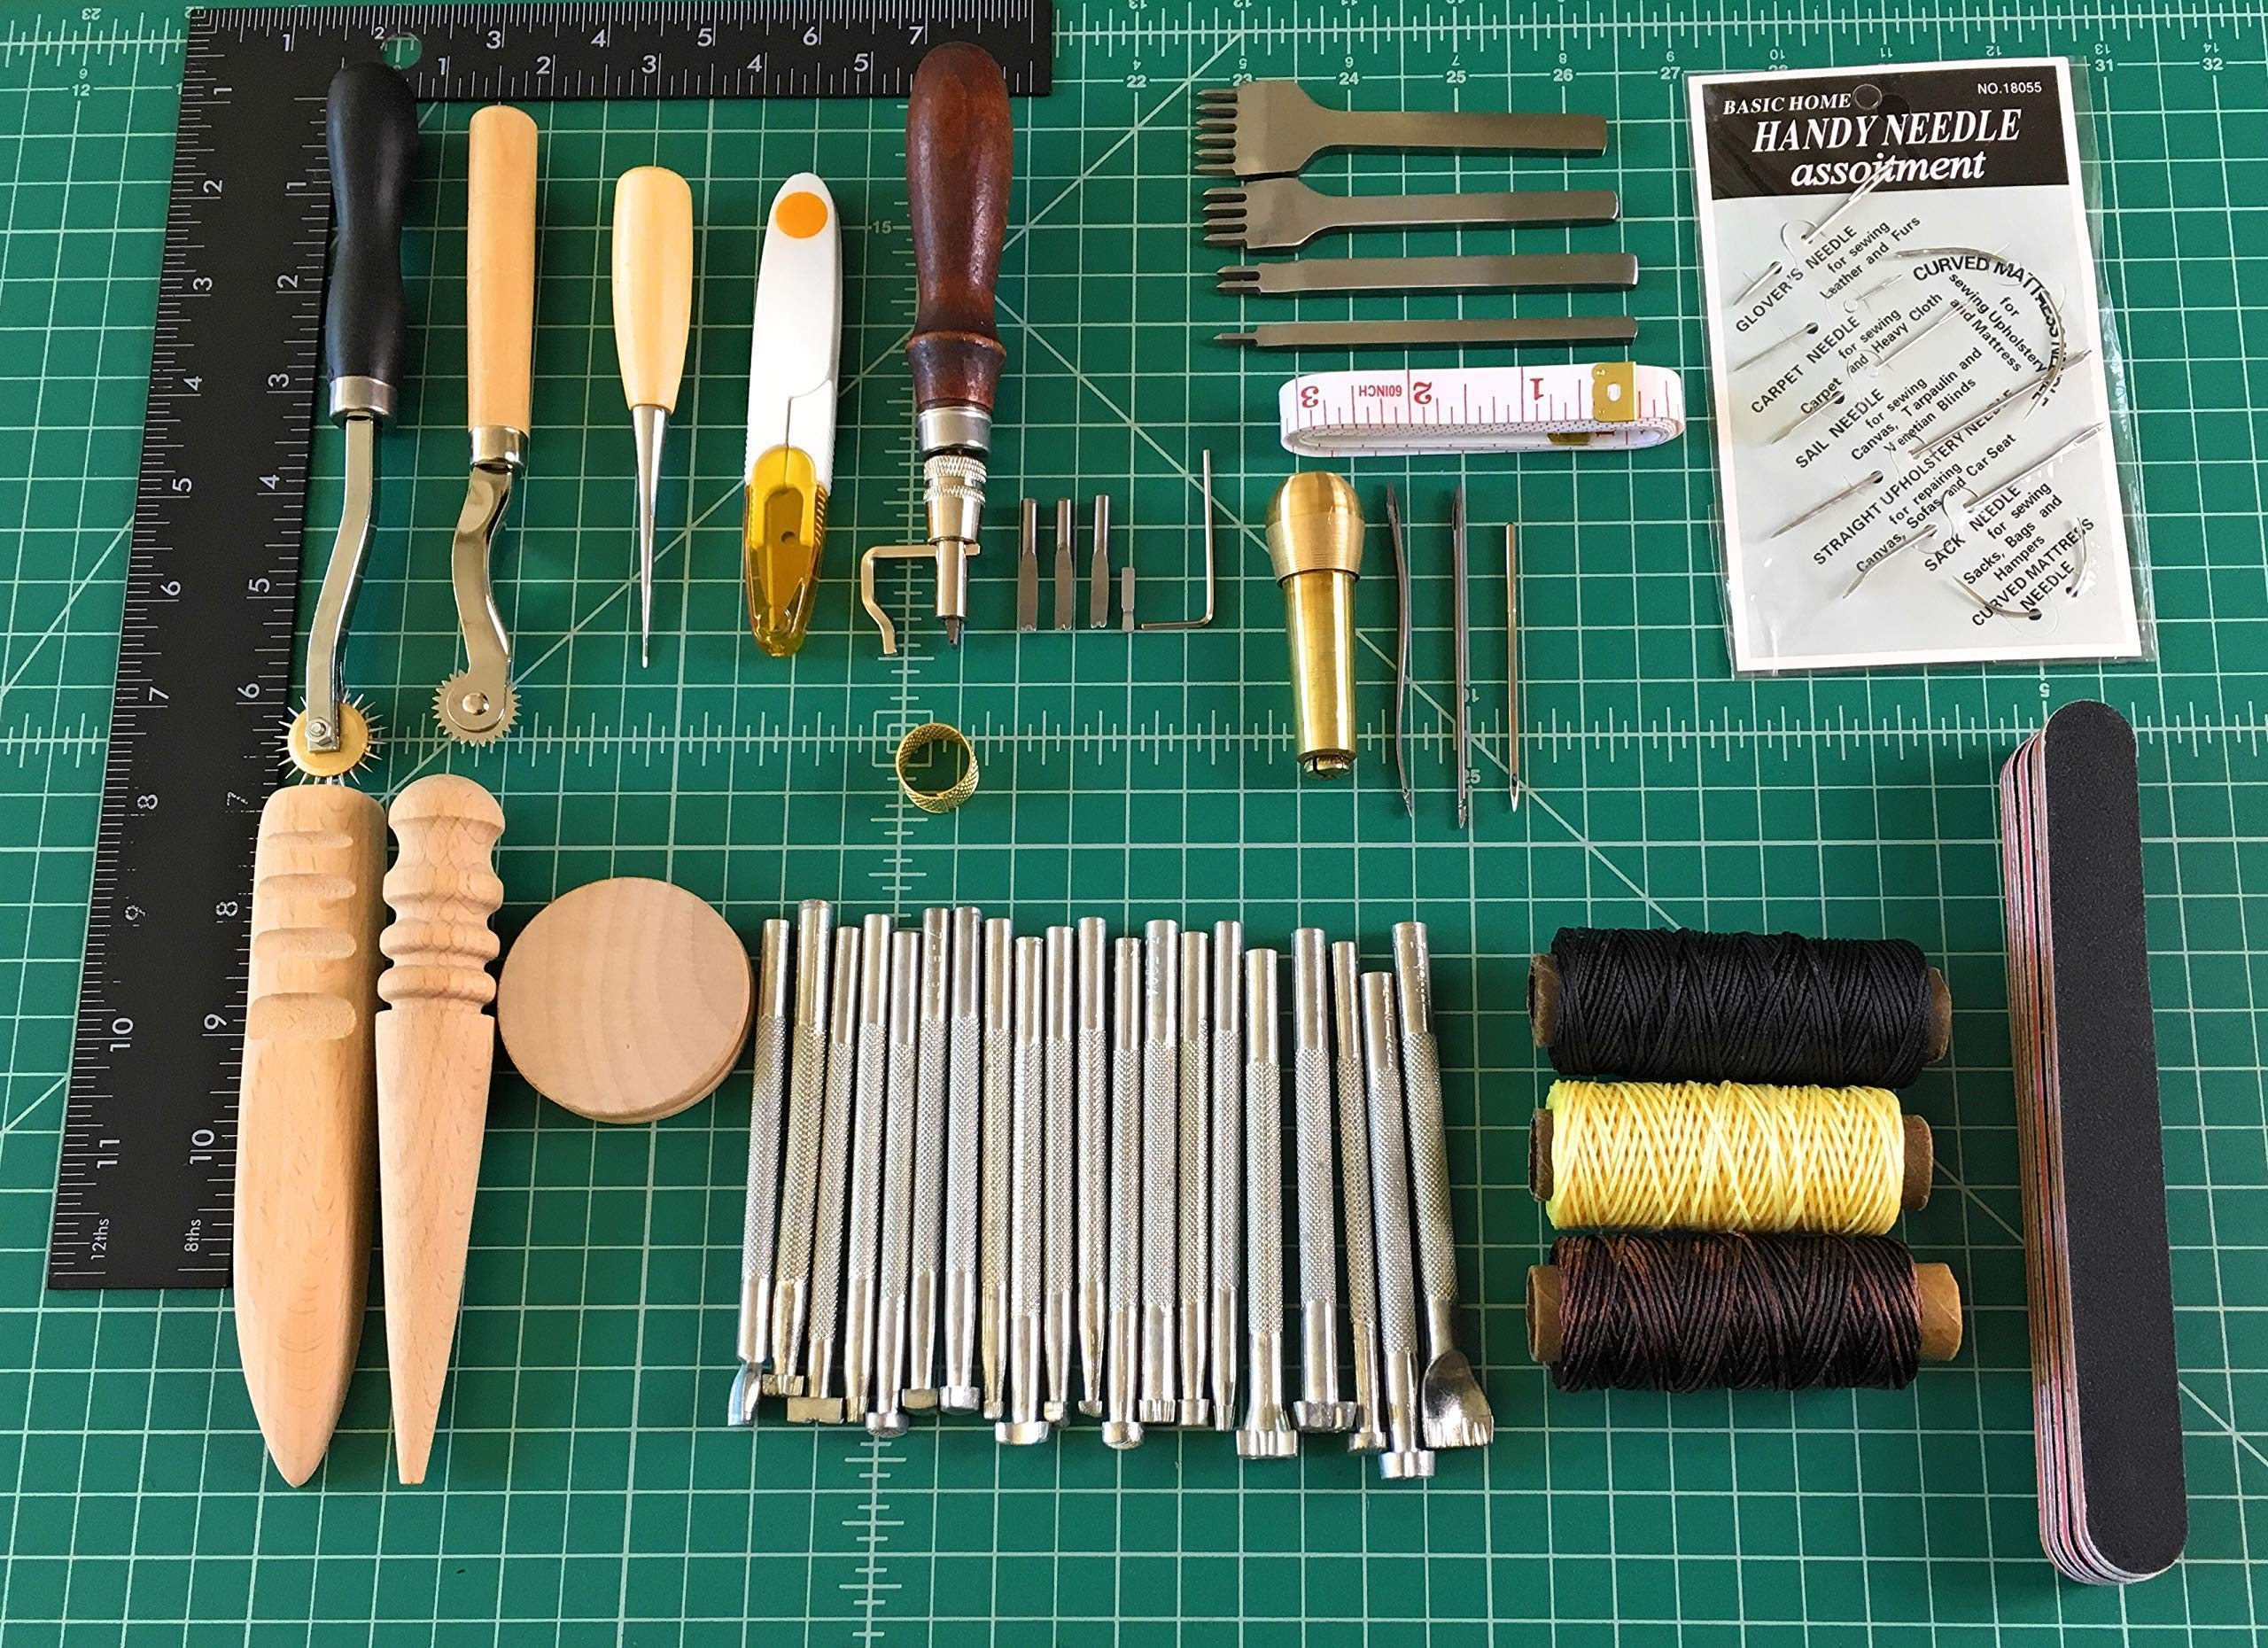 Kendray Leather Craft DIY Hand Tools Kit 59 Pieces Stamping Set Saddle Making with Groover Awl Pressure Cloth Tooth Tool Waxed Thread Needles Prong Punch Scissors Wood Burnisher by Kendray (Image #2)